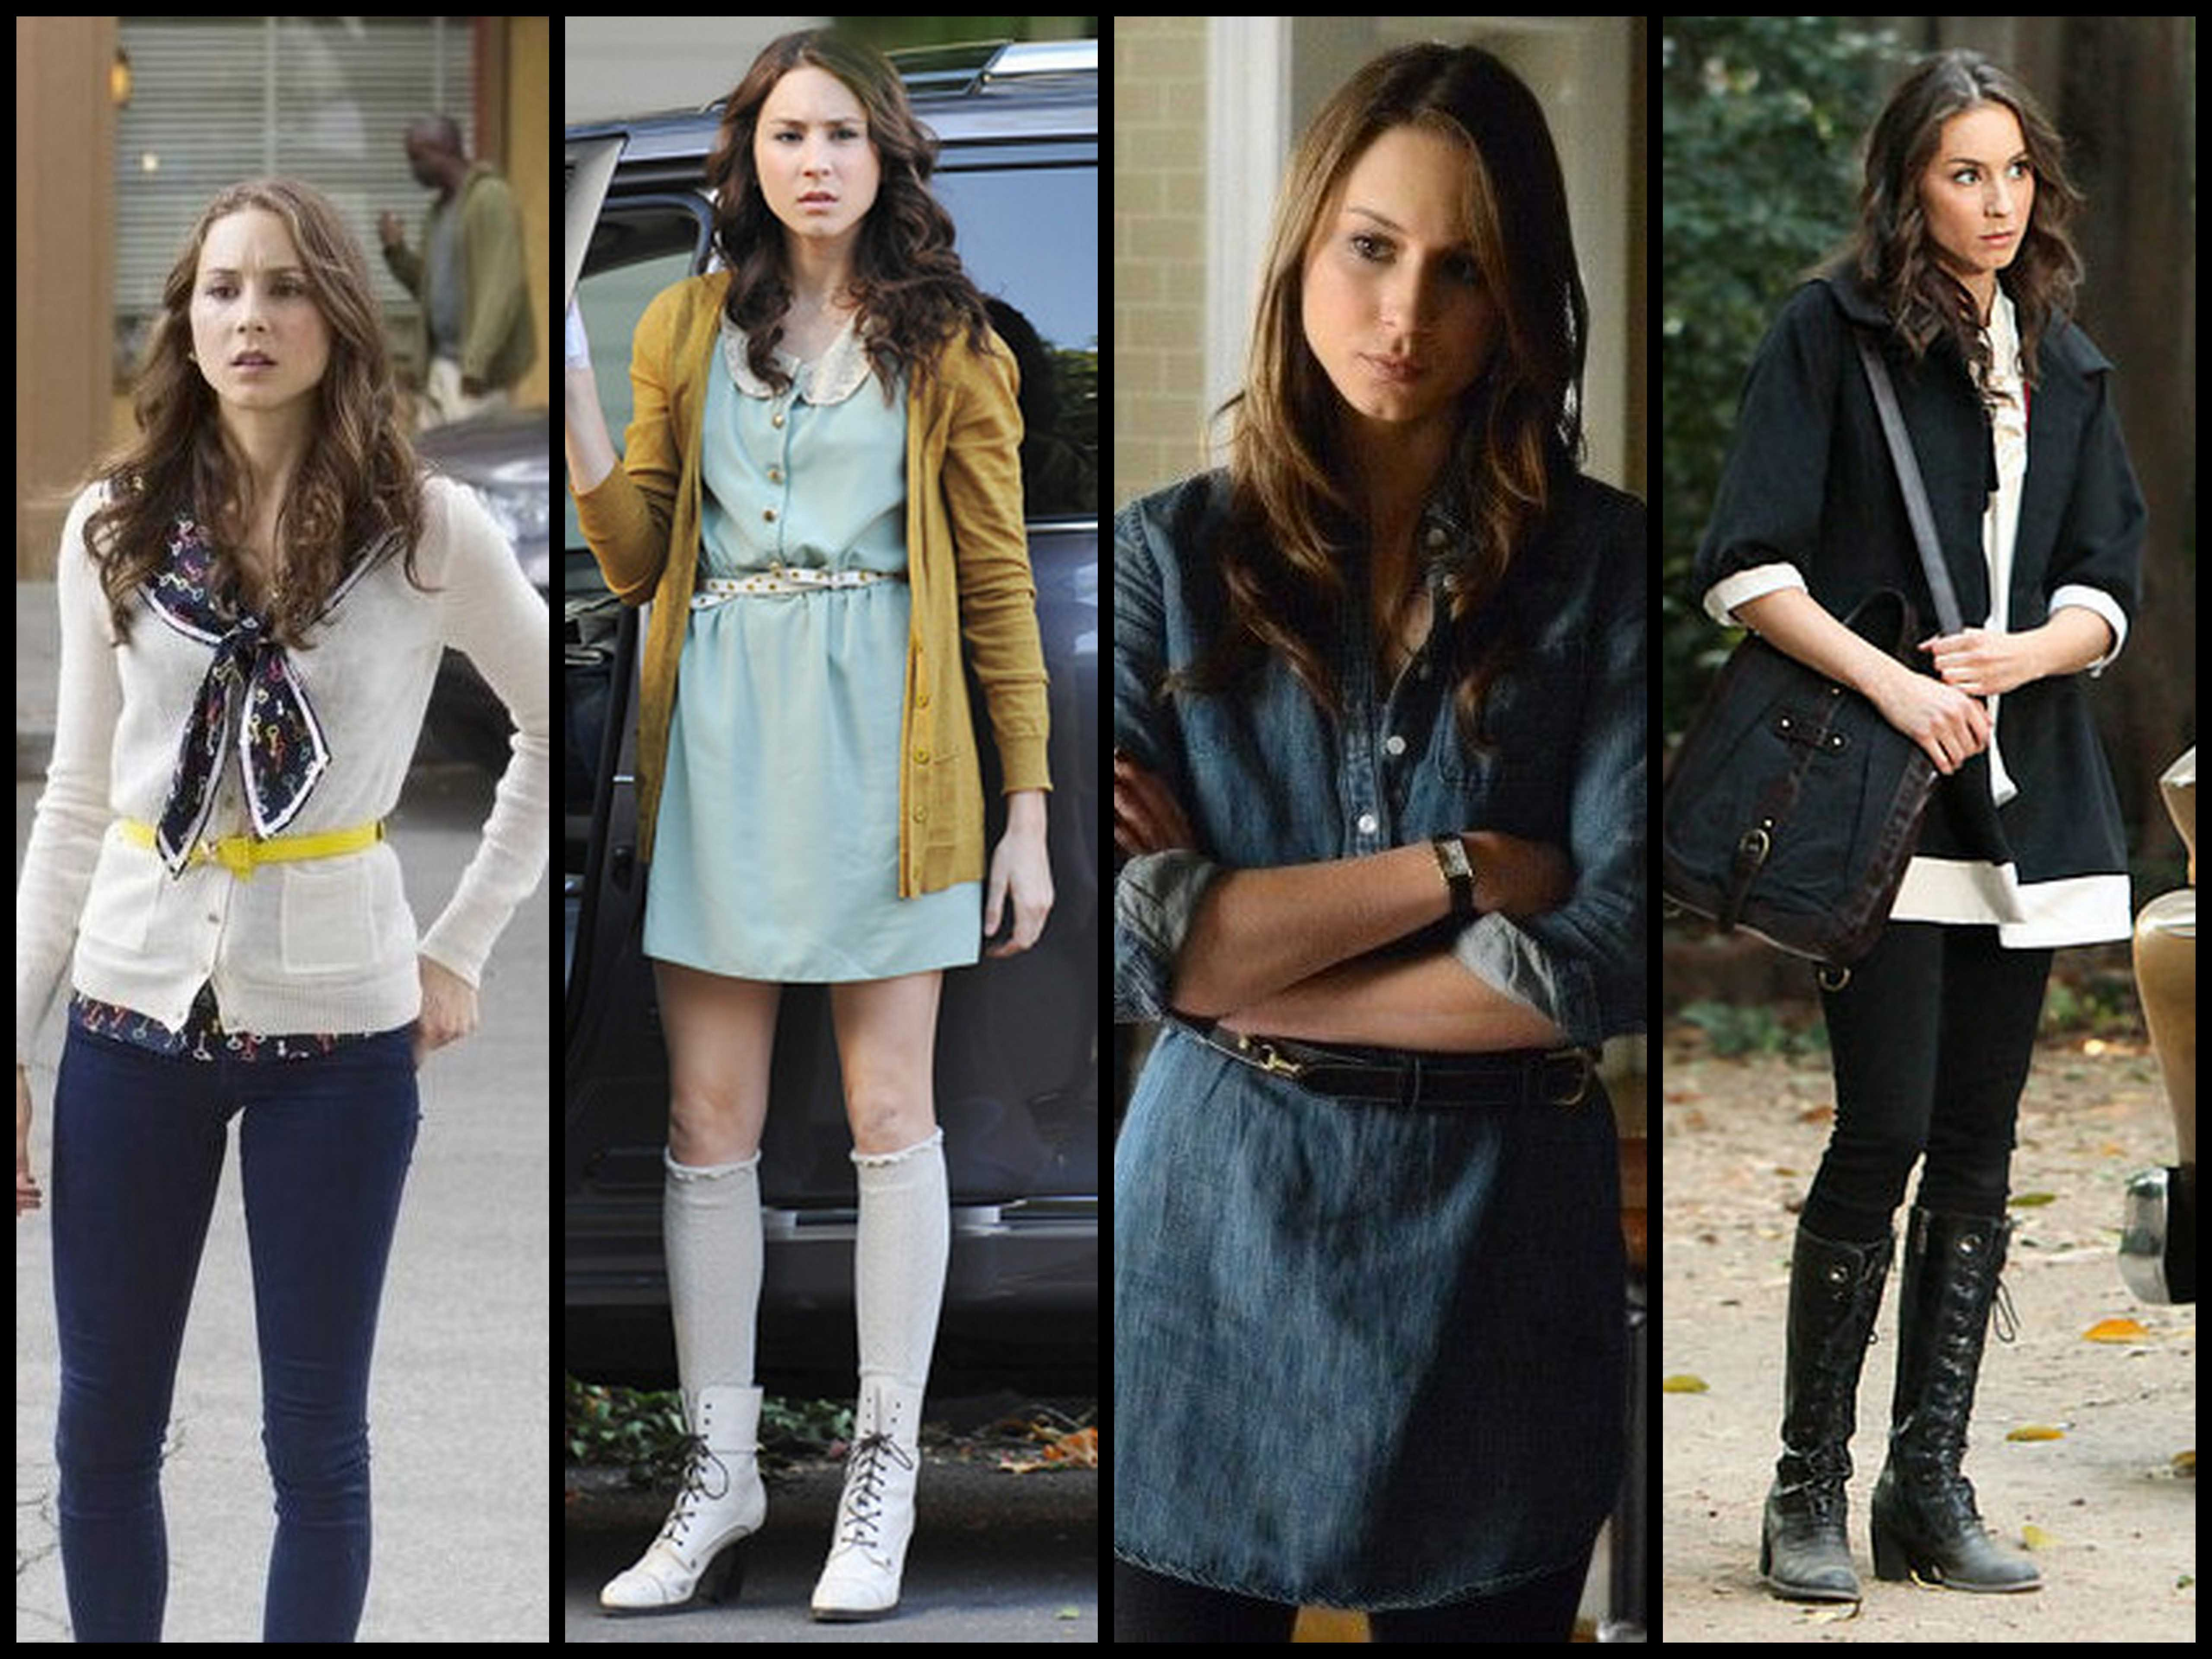 spencer hastings – Fashion Mannequin